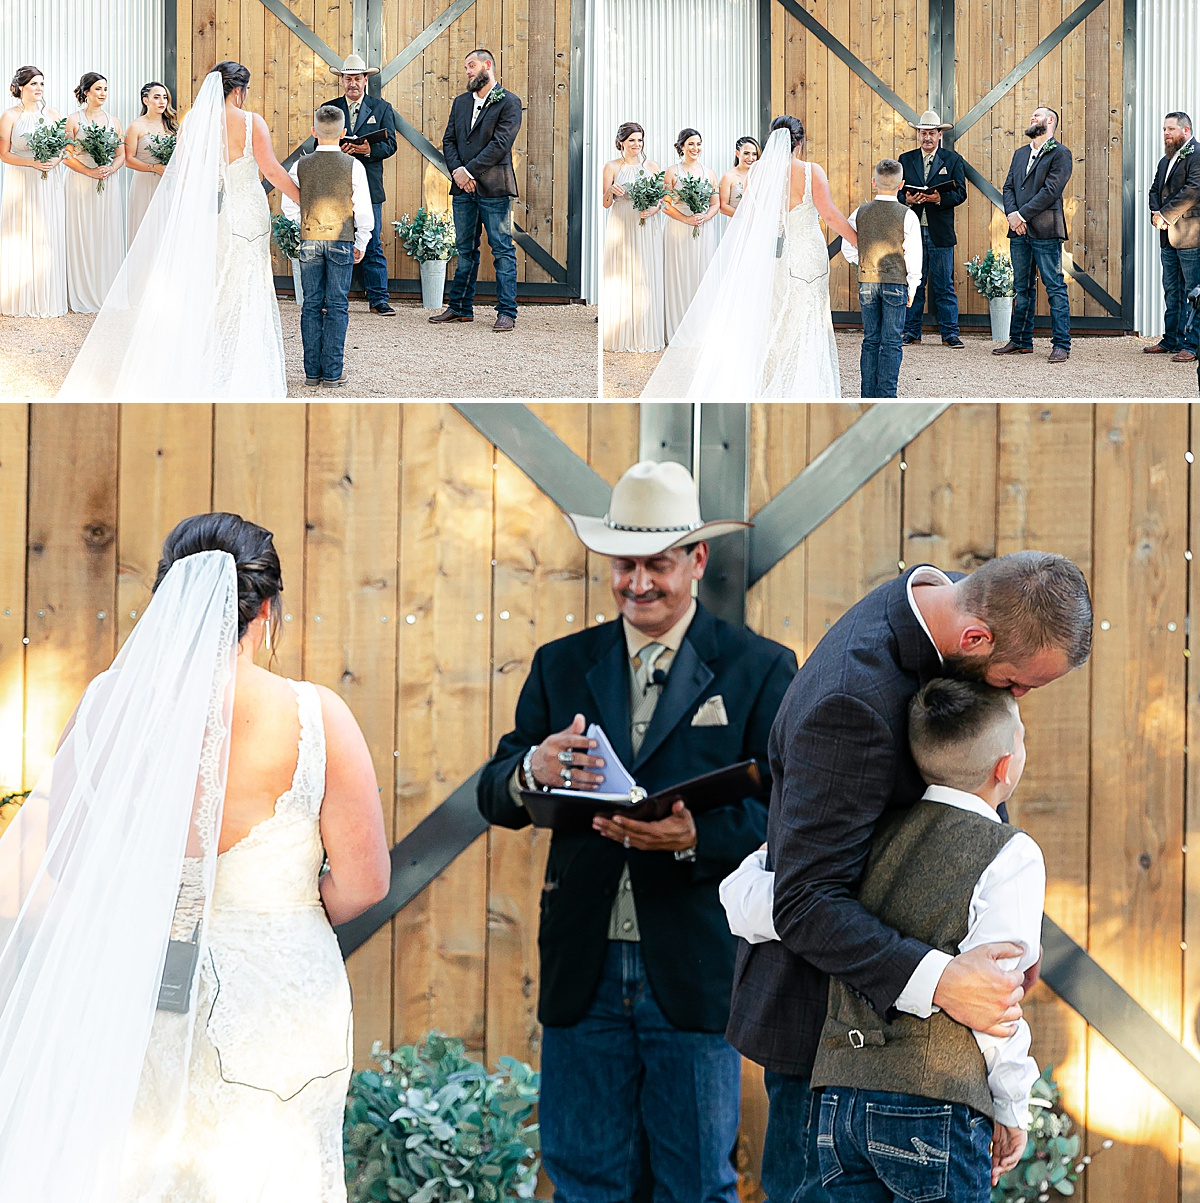 Rustic-Texas-Wedding-Hollow-Creek-Ranch-Carly-Barton-Photography_0109.jpg